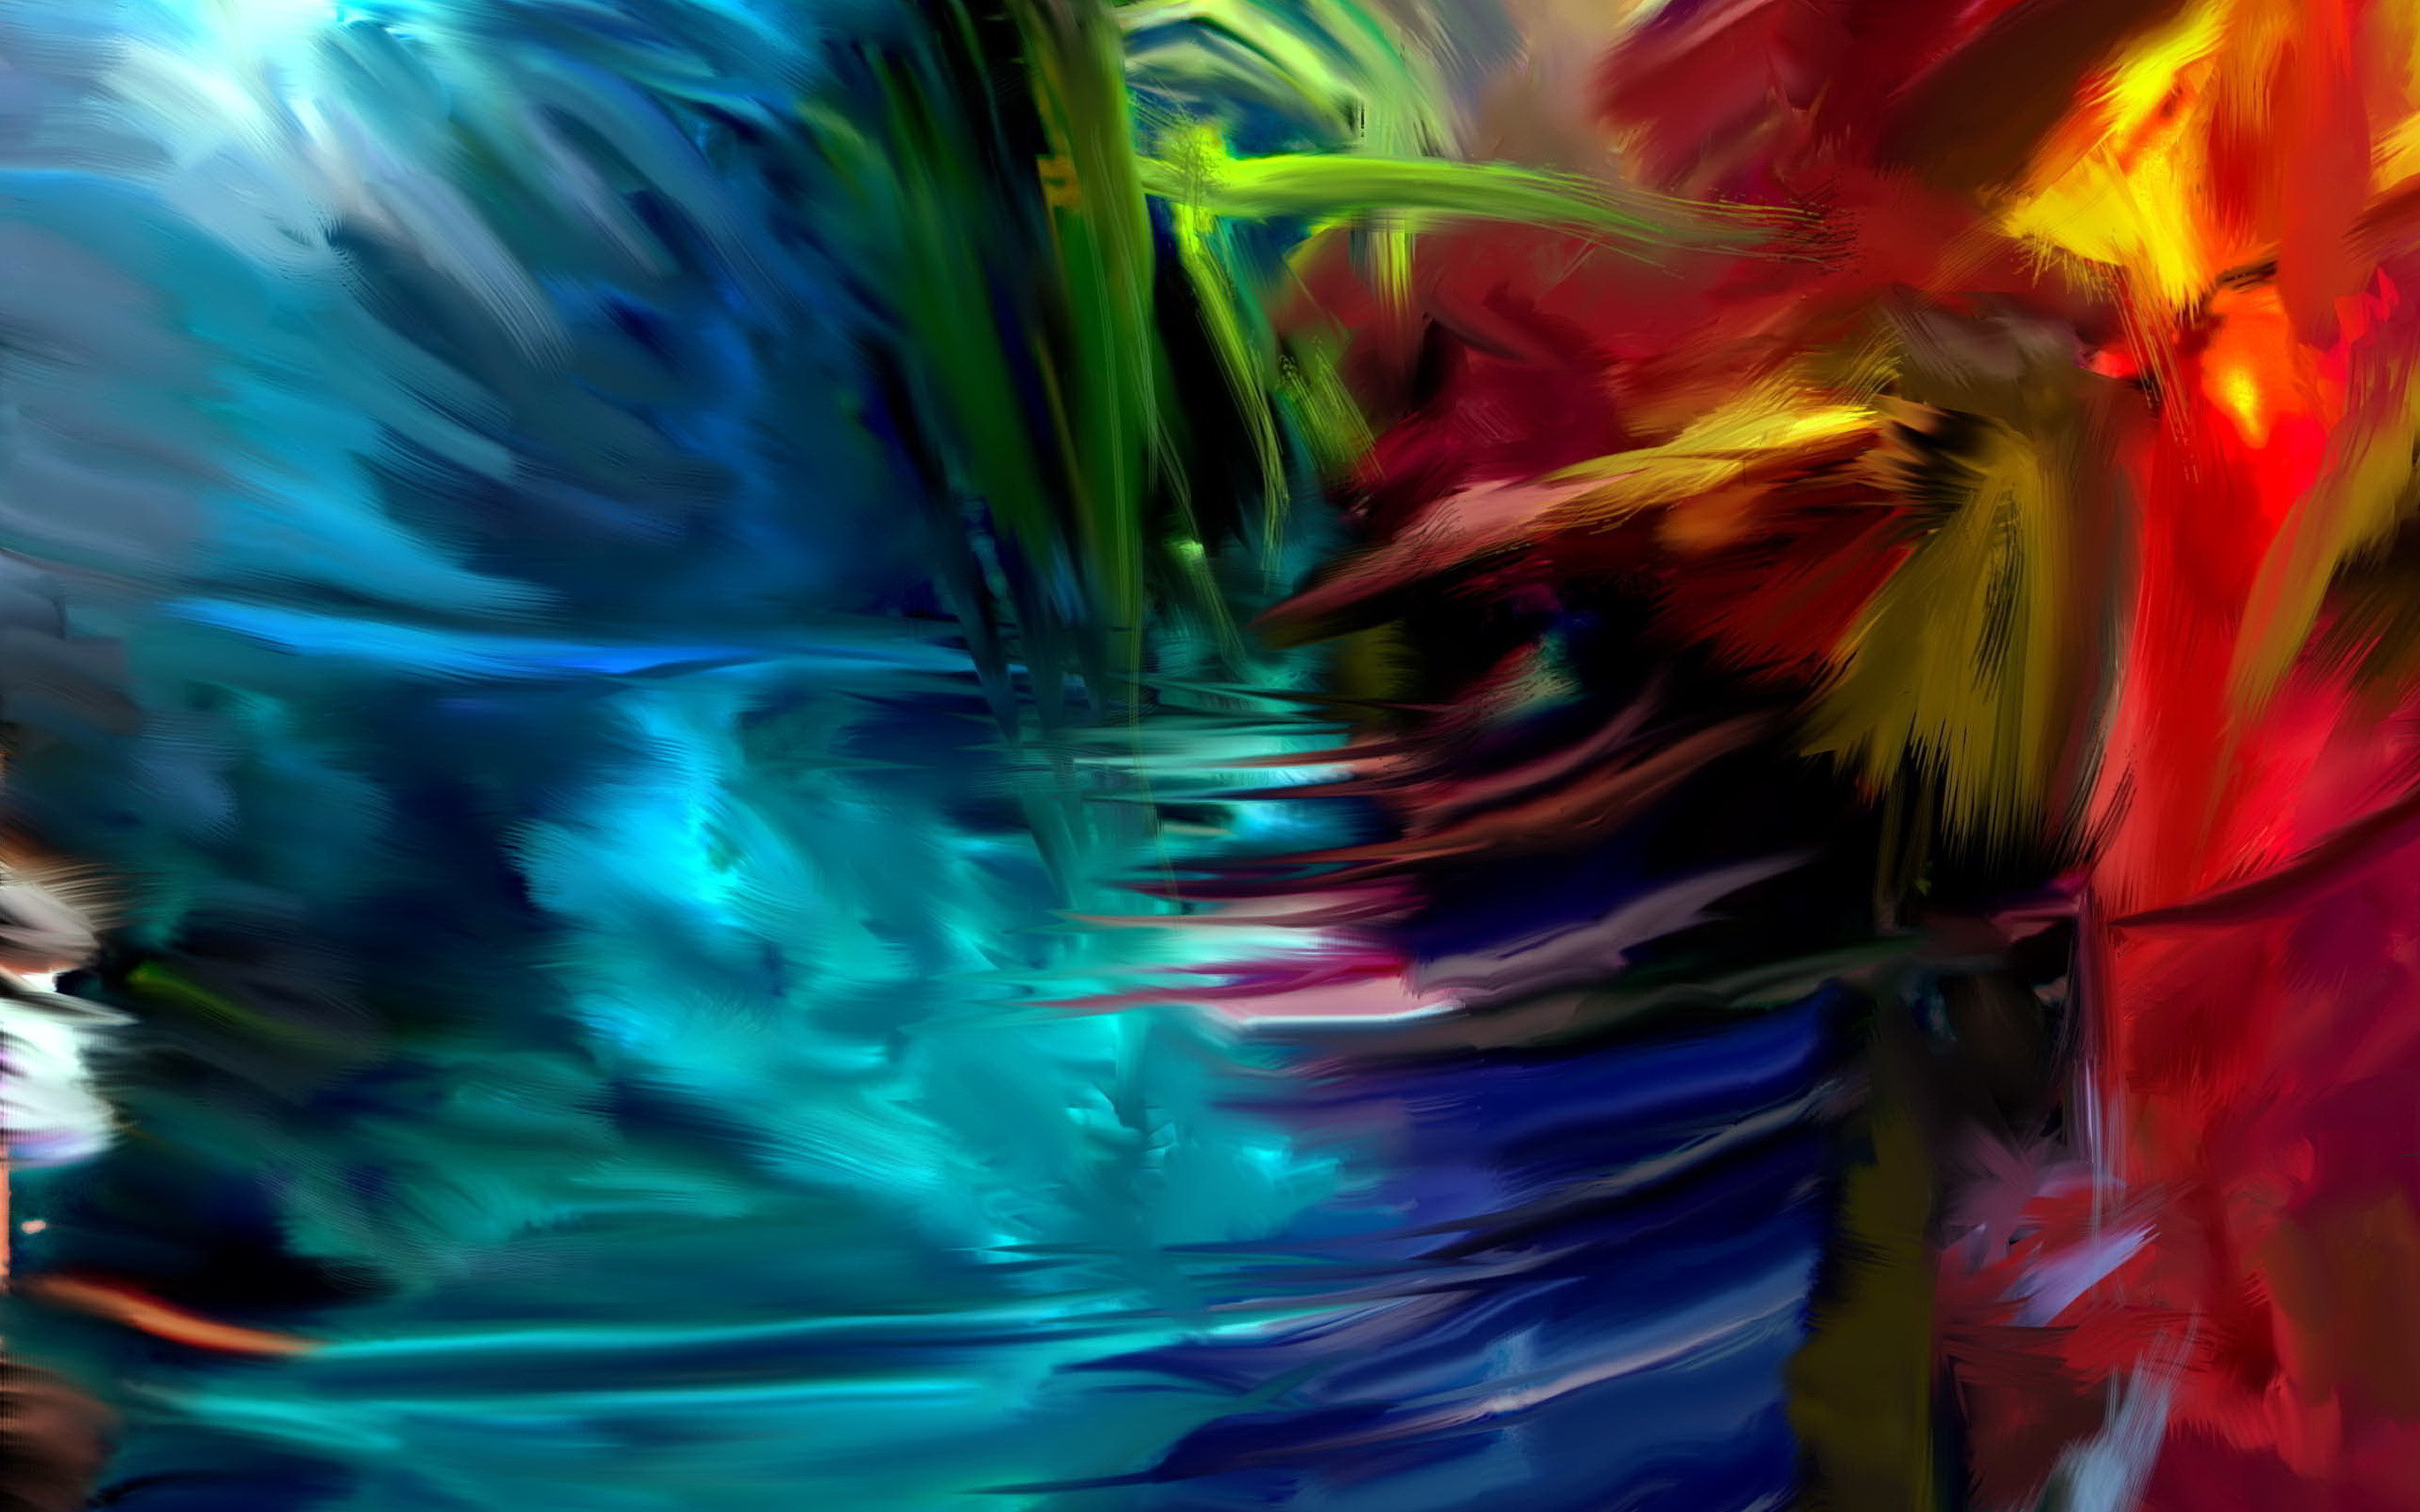 Artistic Abstract Wallpaper Wide | Abstract Wallpapers | Pinterest |  Wallpaper, Abstract images and Drawings